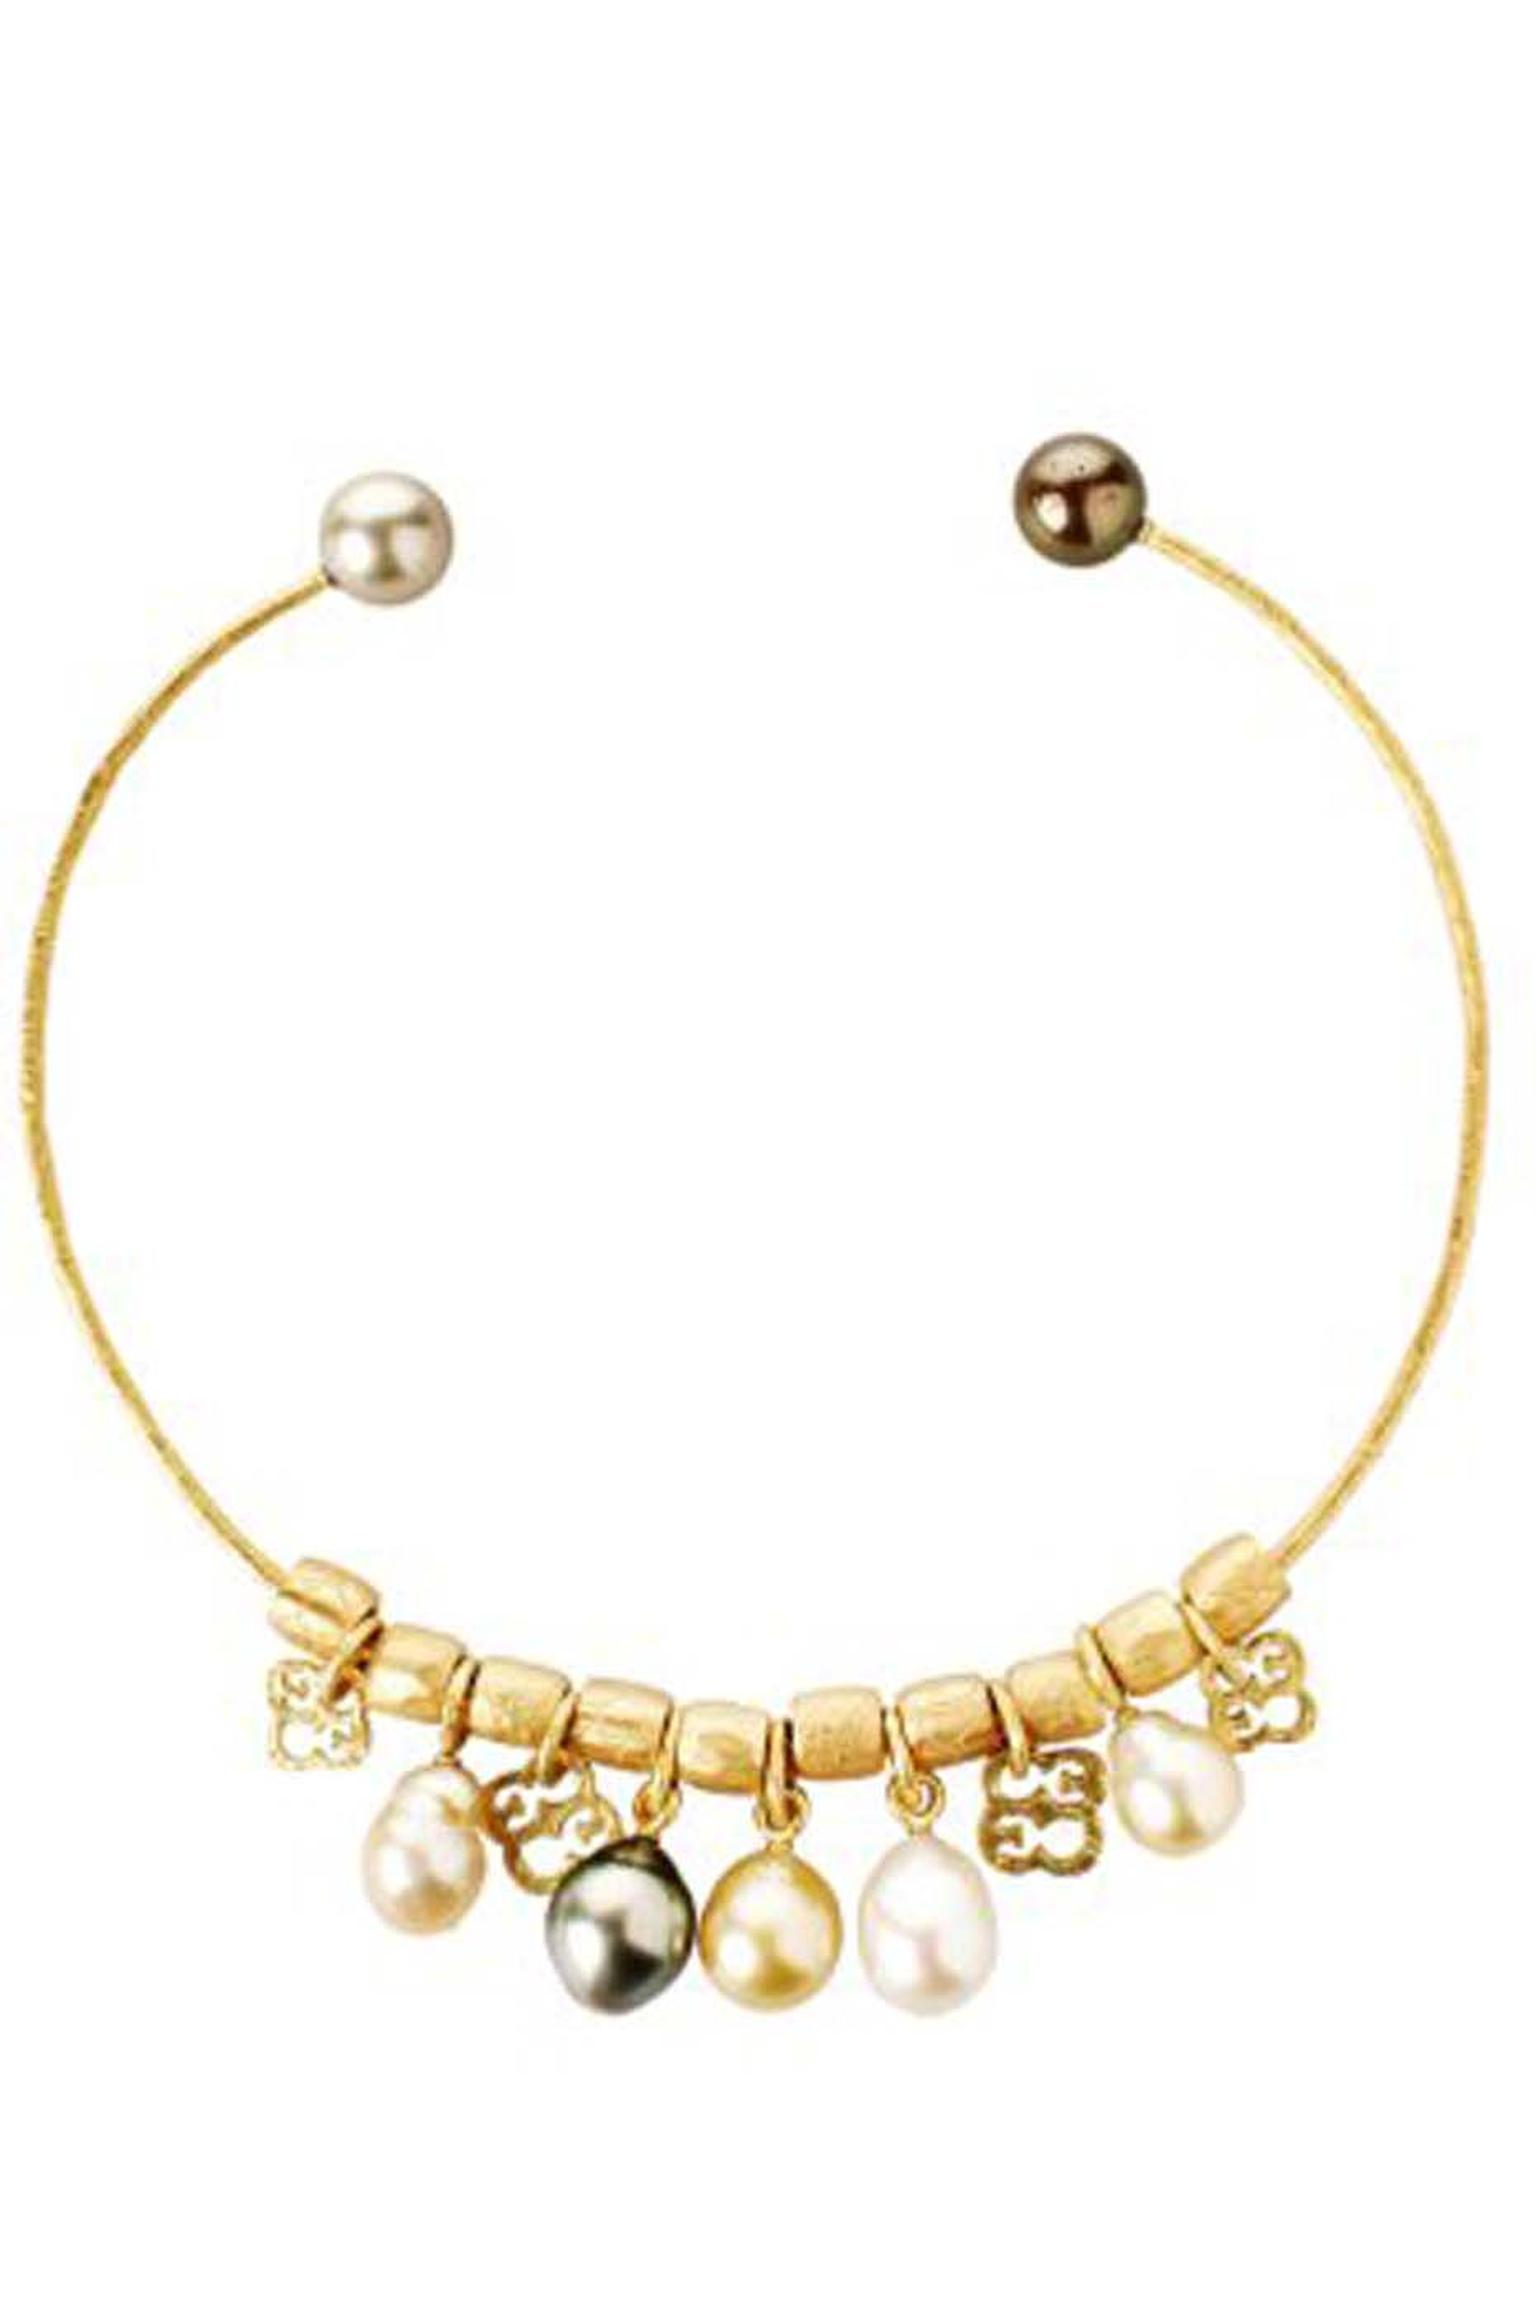 Elena Carrera yellow gold choker with pearls and charms (2,029€).